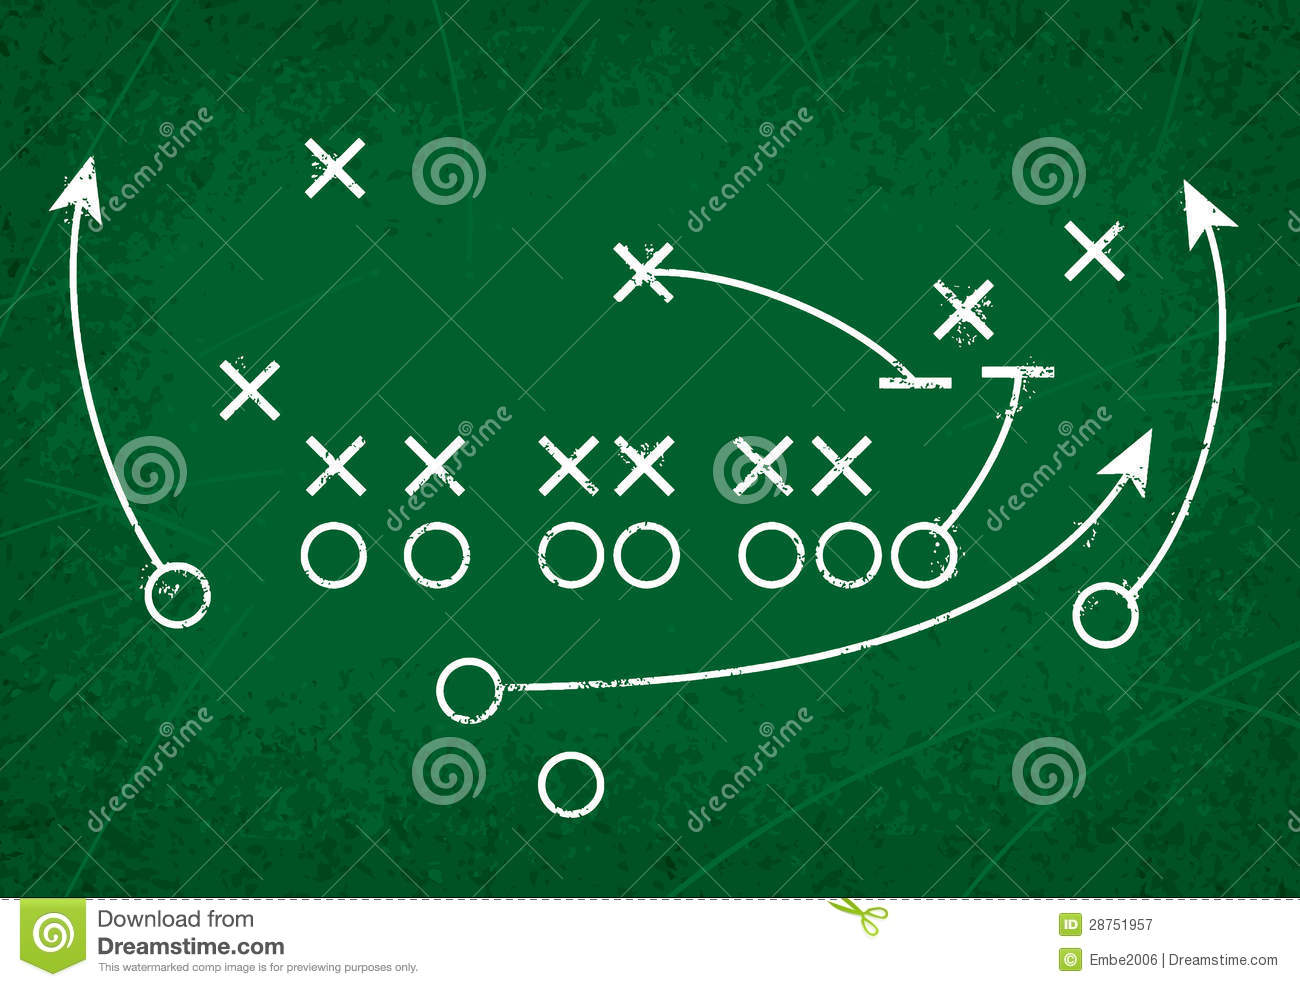 Football Strategy Play Stock Vector Illustration Of Instruct 28751957